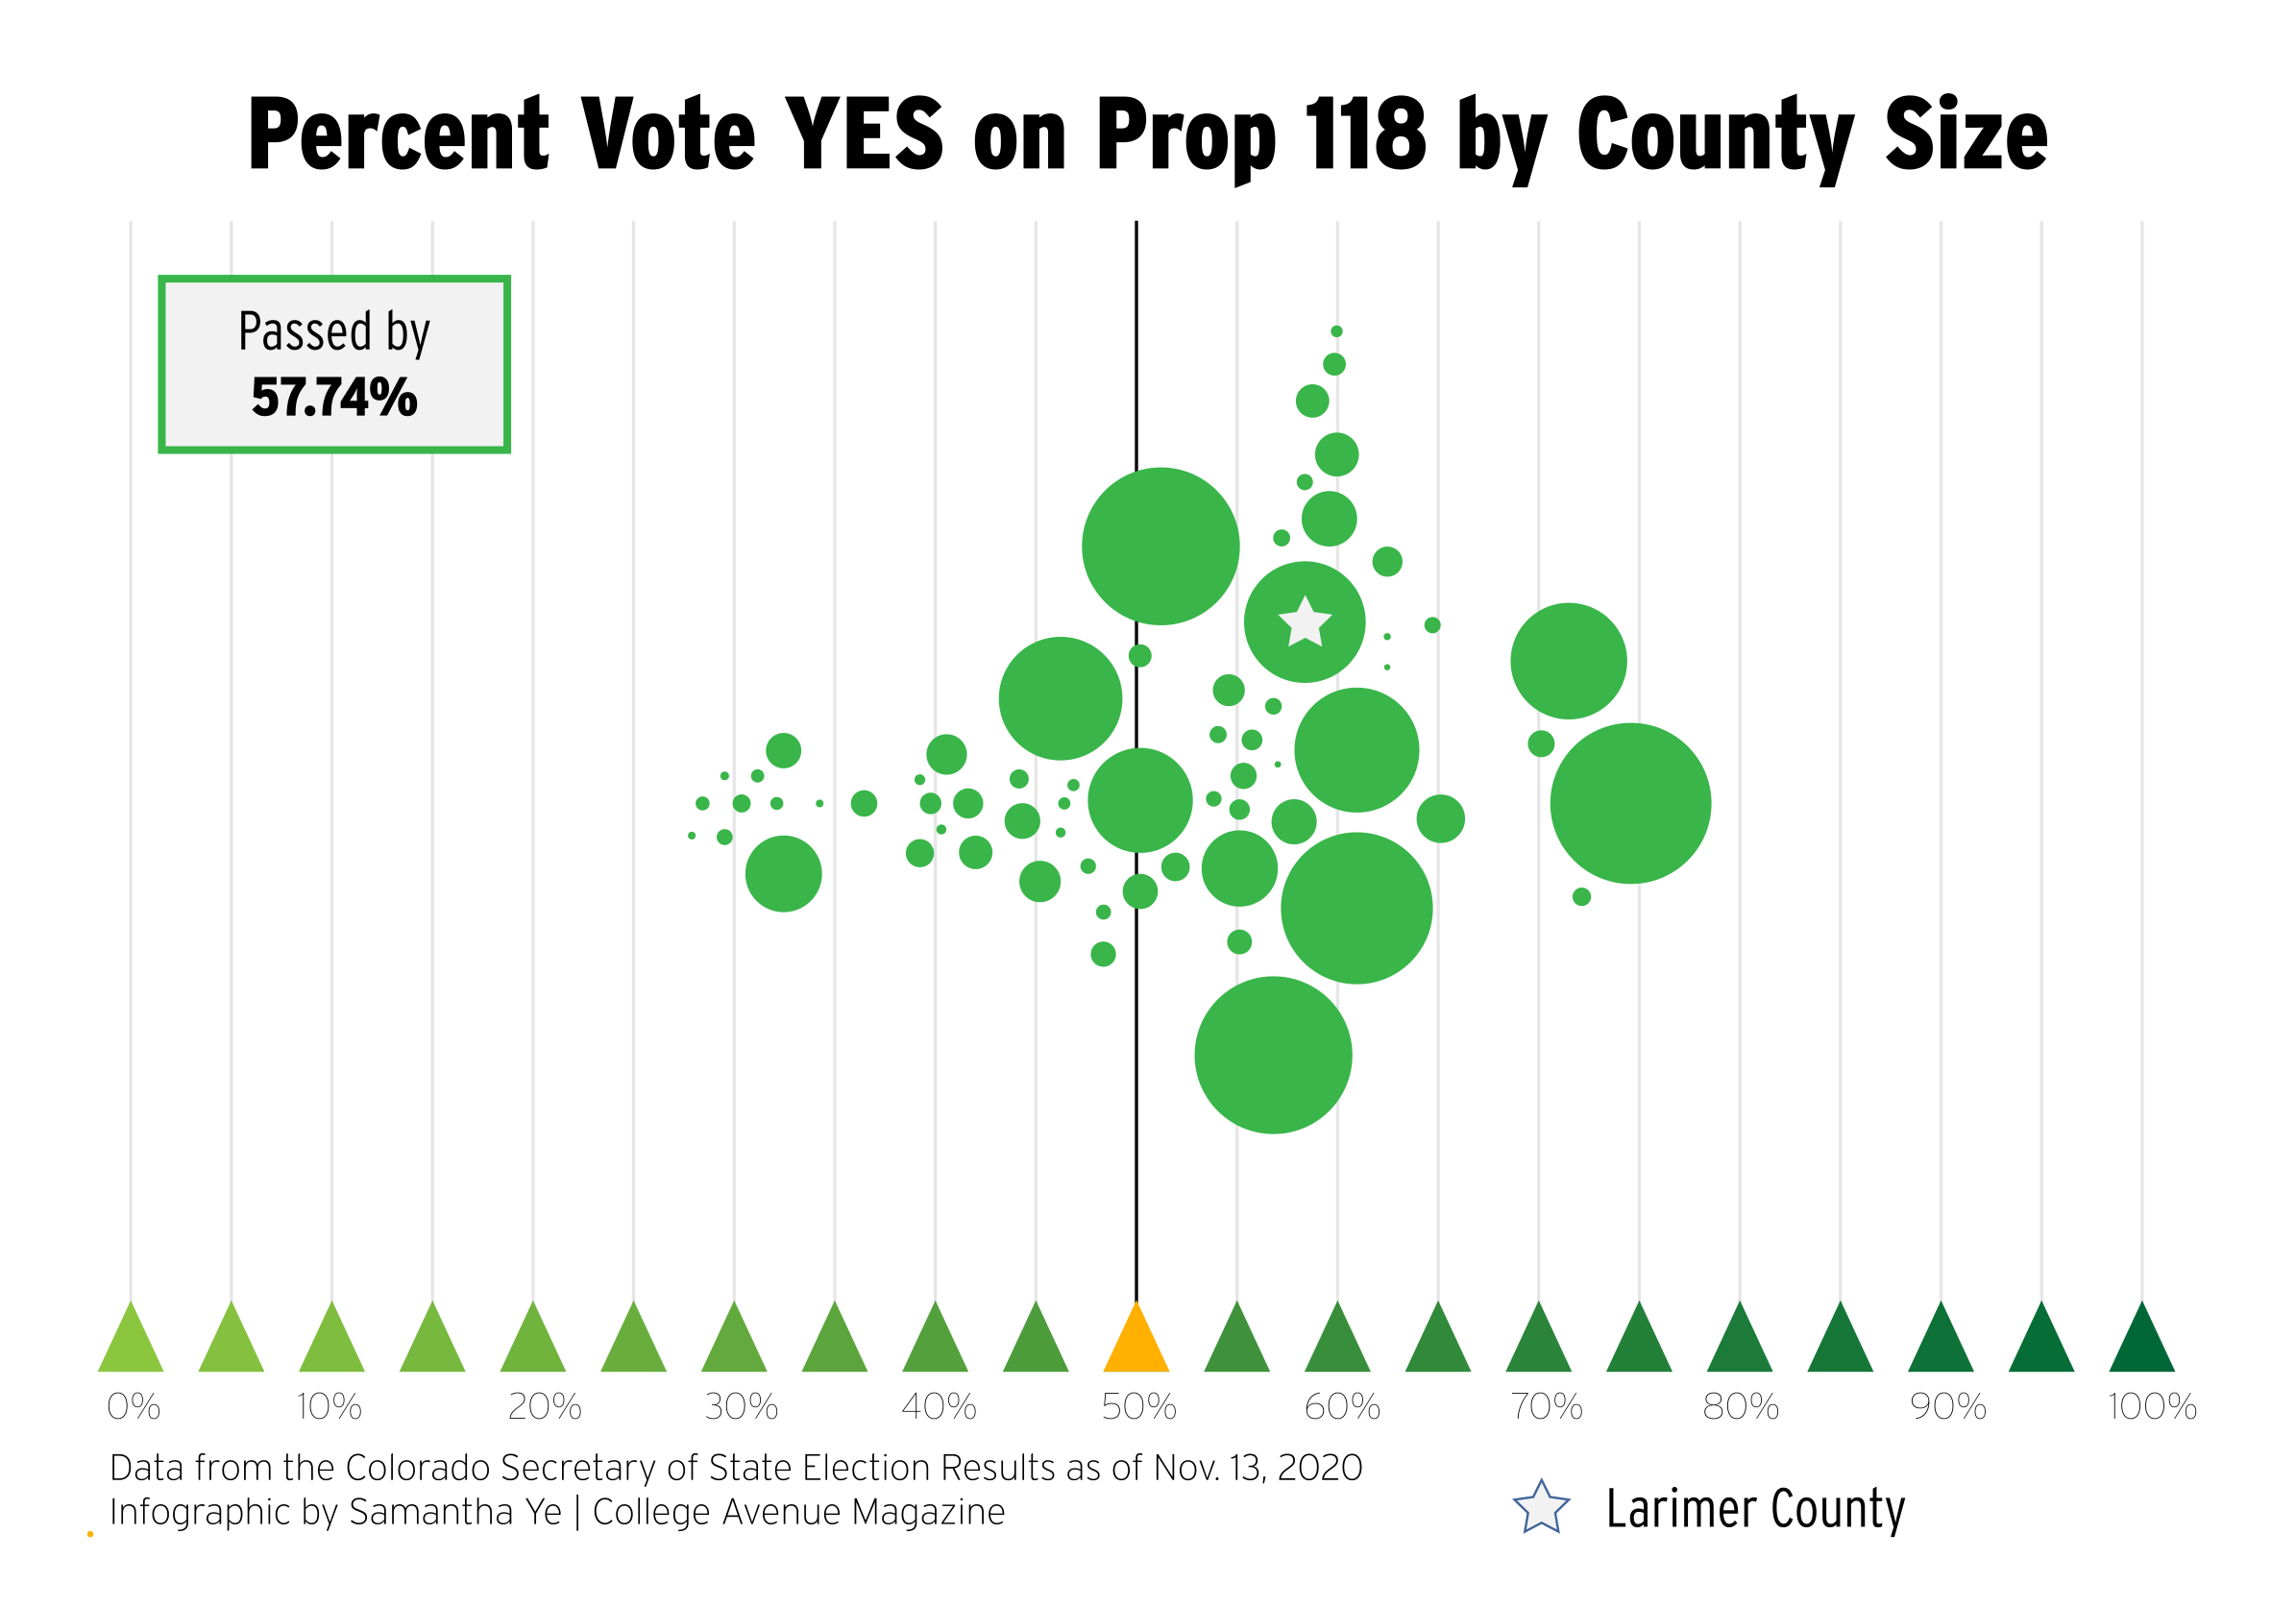 Percent Vote YES on Prop 118 by County Size